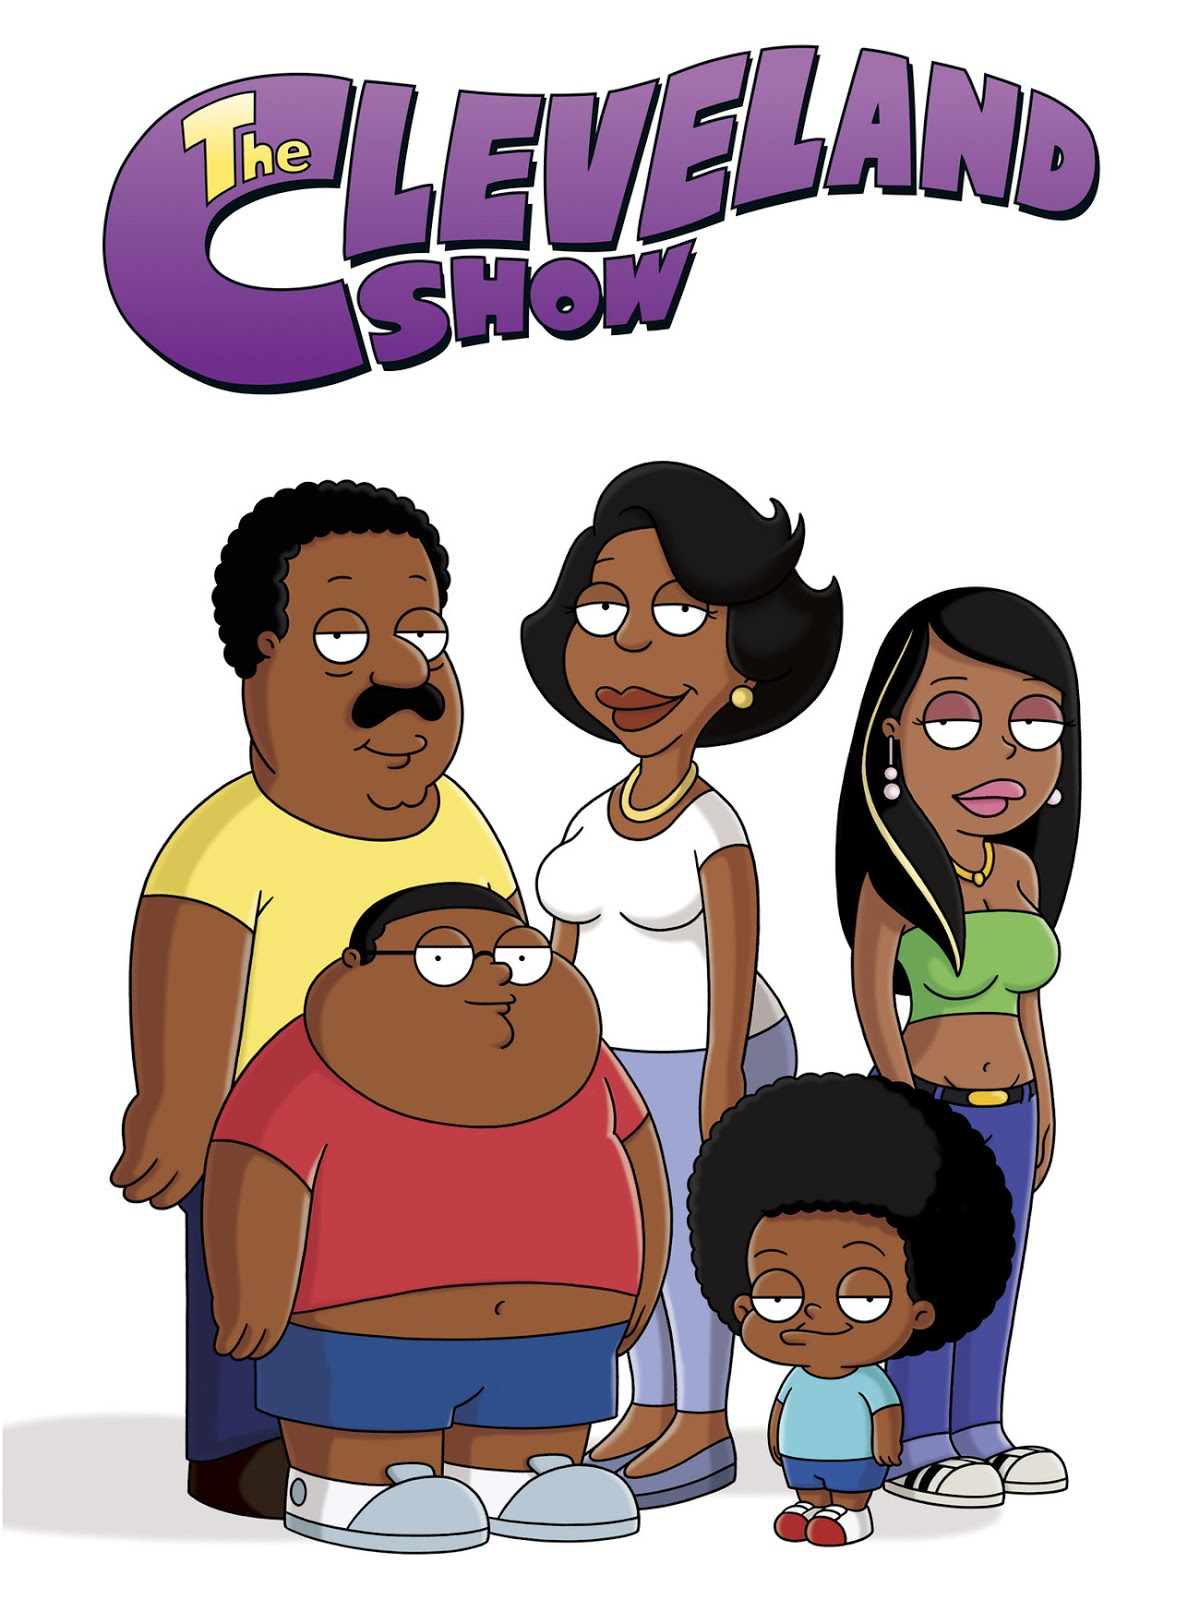 The Cleveland Show (TV Series 2009–2013) ταινιες online seires oipeirates greek subs